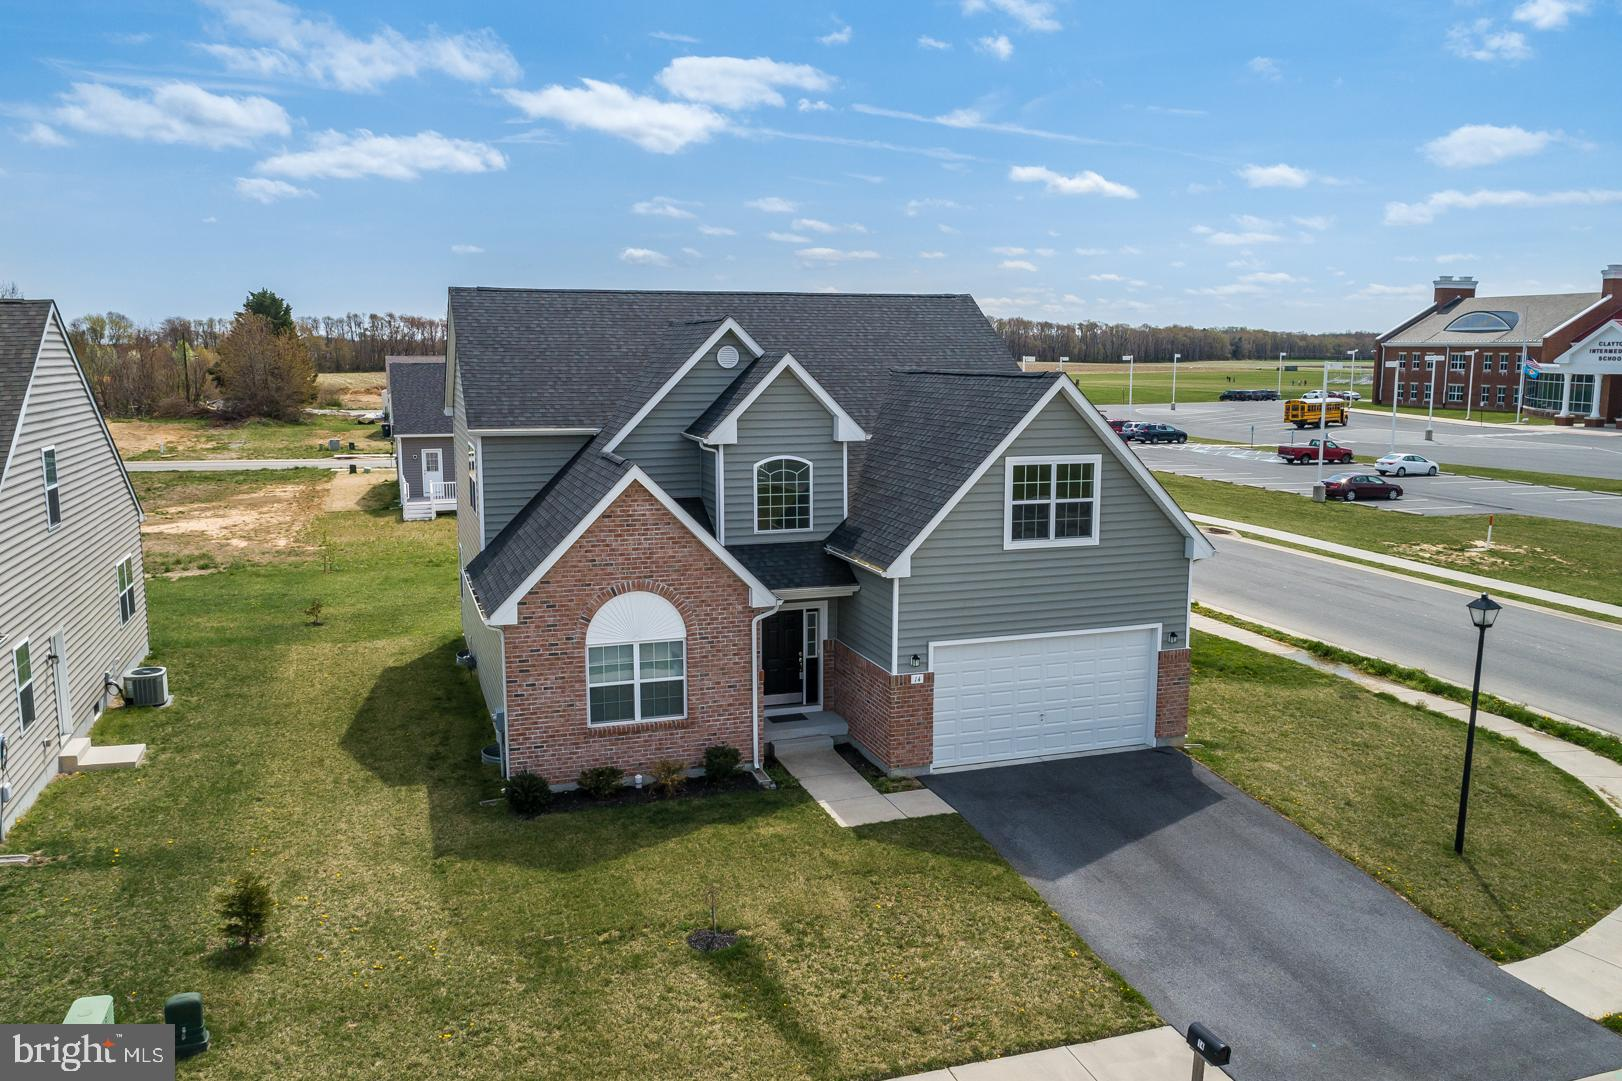 Available for immediate occupancy!  This 2 year like new home was formerly built to be the model home and barely showing signs of being lived in. Largest home in the neighborhood at over 3000 square feet because of the the finished 20x14 bonus room over the garage not included in assessor sqft.  Open floor plan concept allowing views across the living, dining, and kitchen areas.  First floor impressive Master Bedroom with tray ceilings, huge 15x11 Master Bath (soaking tub, tiled shower w/glass door, double bowl his/hers vanity), and a huge 13x8 Walk In Closet!  Office or 5th bedroom (does have closet) also located on the first floor.  Grand views from the catwalk over the open downstairs space.  Upstairs hosts 3 more great sized bedrooms, open sitting area, and the nearly 300 sq ft bonus room.  Unfinished basement with egress window could easily be finished.  Home features also includes upgraded brick veneer, attached 2 car garage, maintenance free deck off the dining area, premium corner lot, and more.  Why wait for new construction when this home is eligible for quick delivery!  Located in 3 peat State Football Champs Smyrna School District close to DE Beaches and RT 1 for easy commuting!